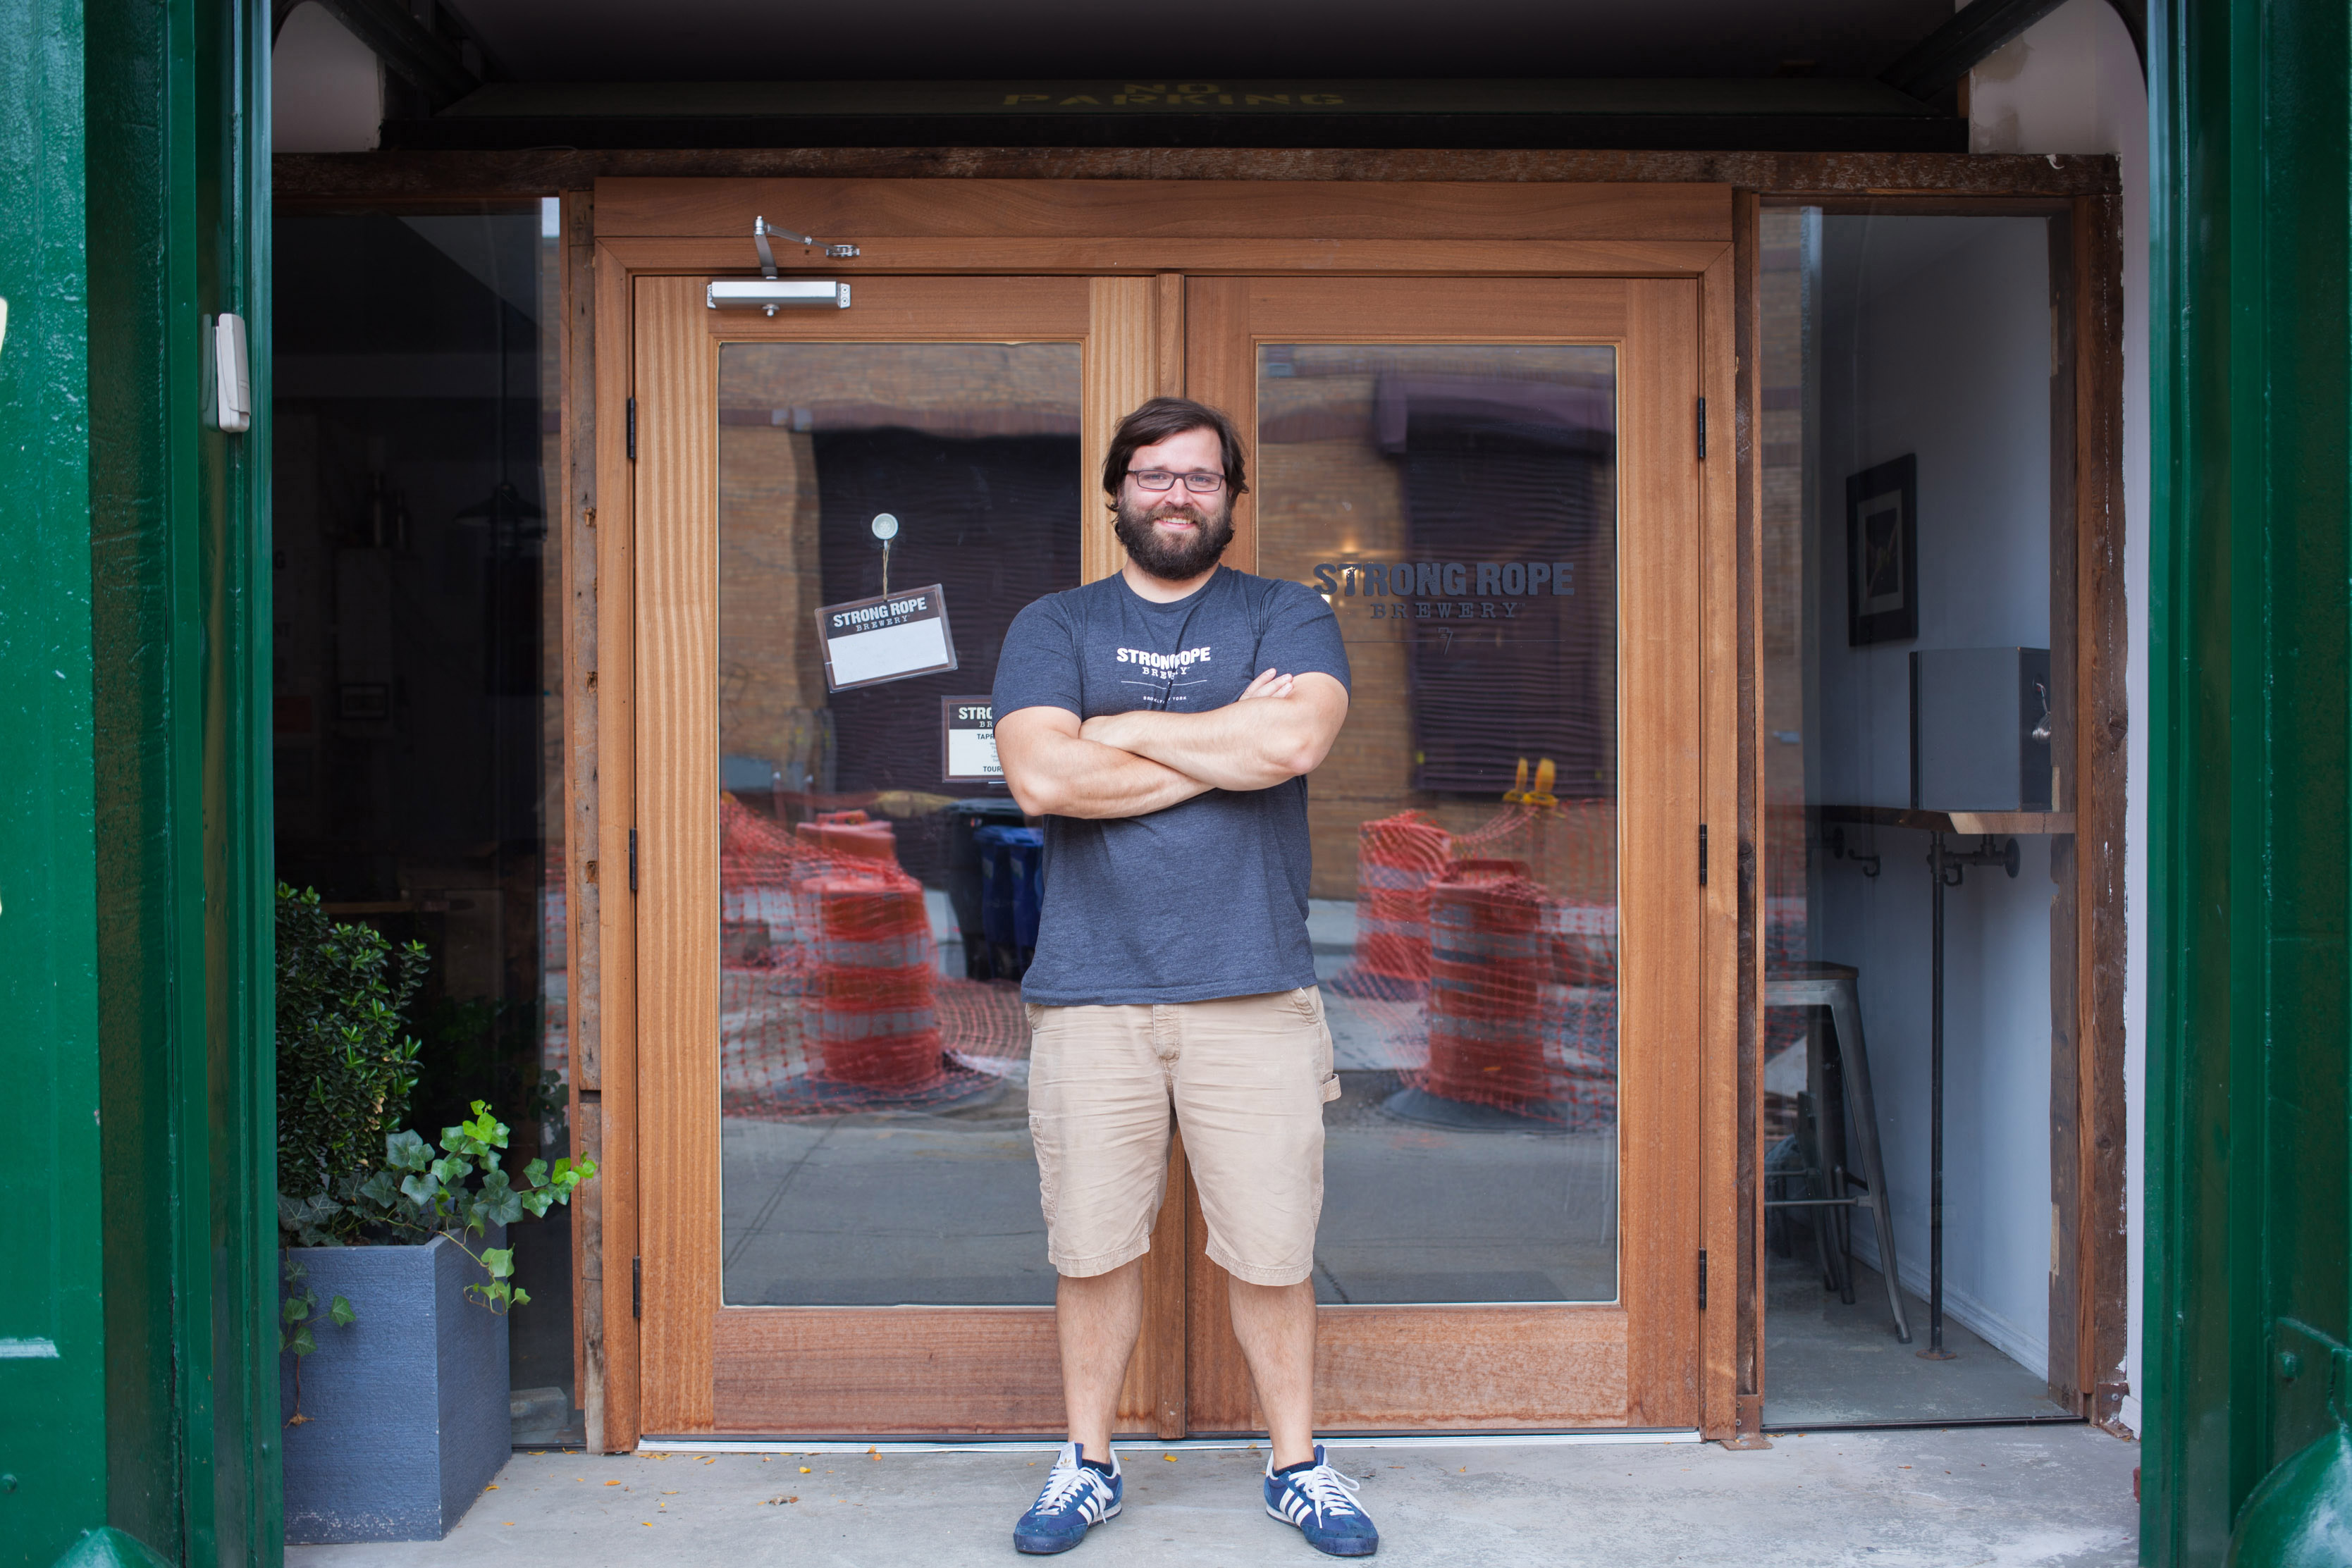 Jason Sahler, Owner and Brewer of Strong Rope Brewery